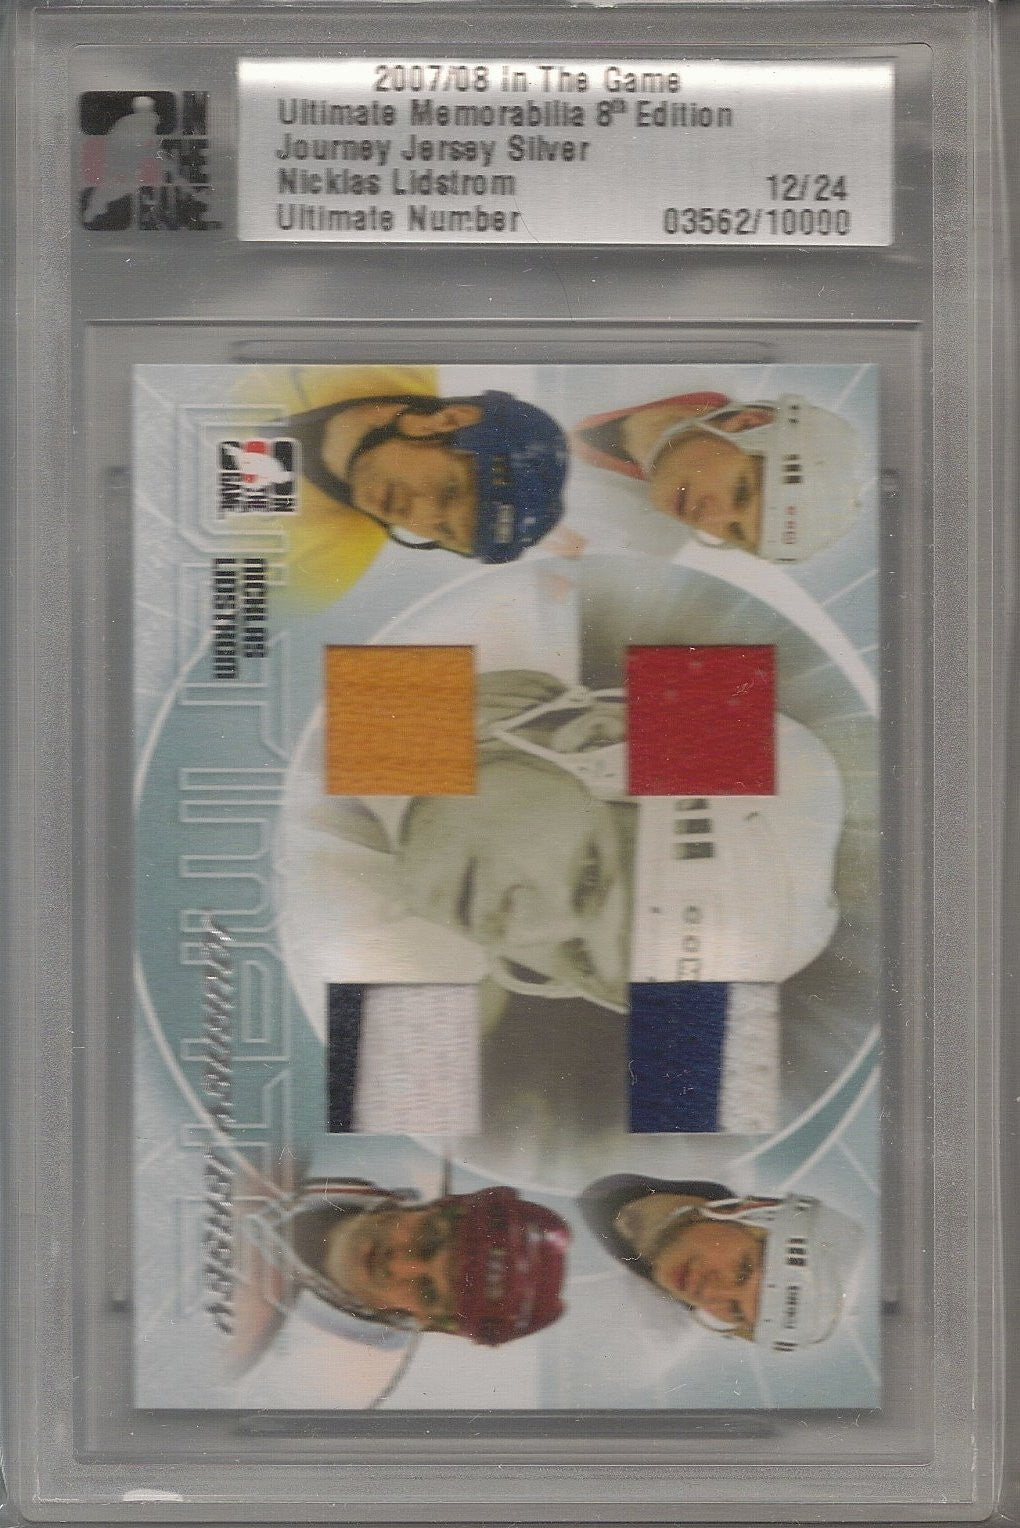 Nicklas Lidstrom, 2007-08 In the Game, Ultimate material 8th Ed, Journey Jersey Silver